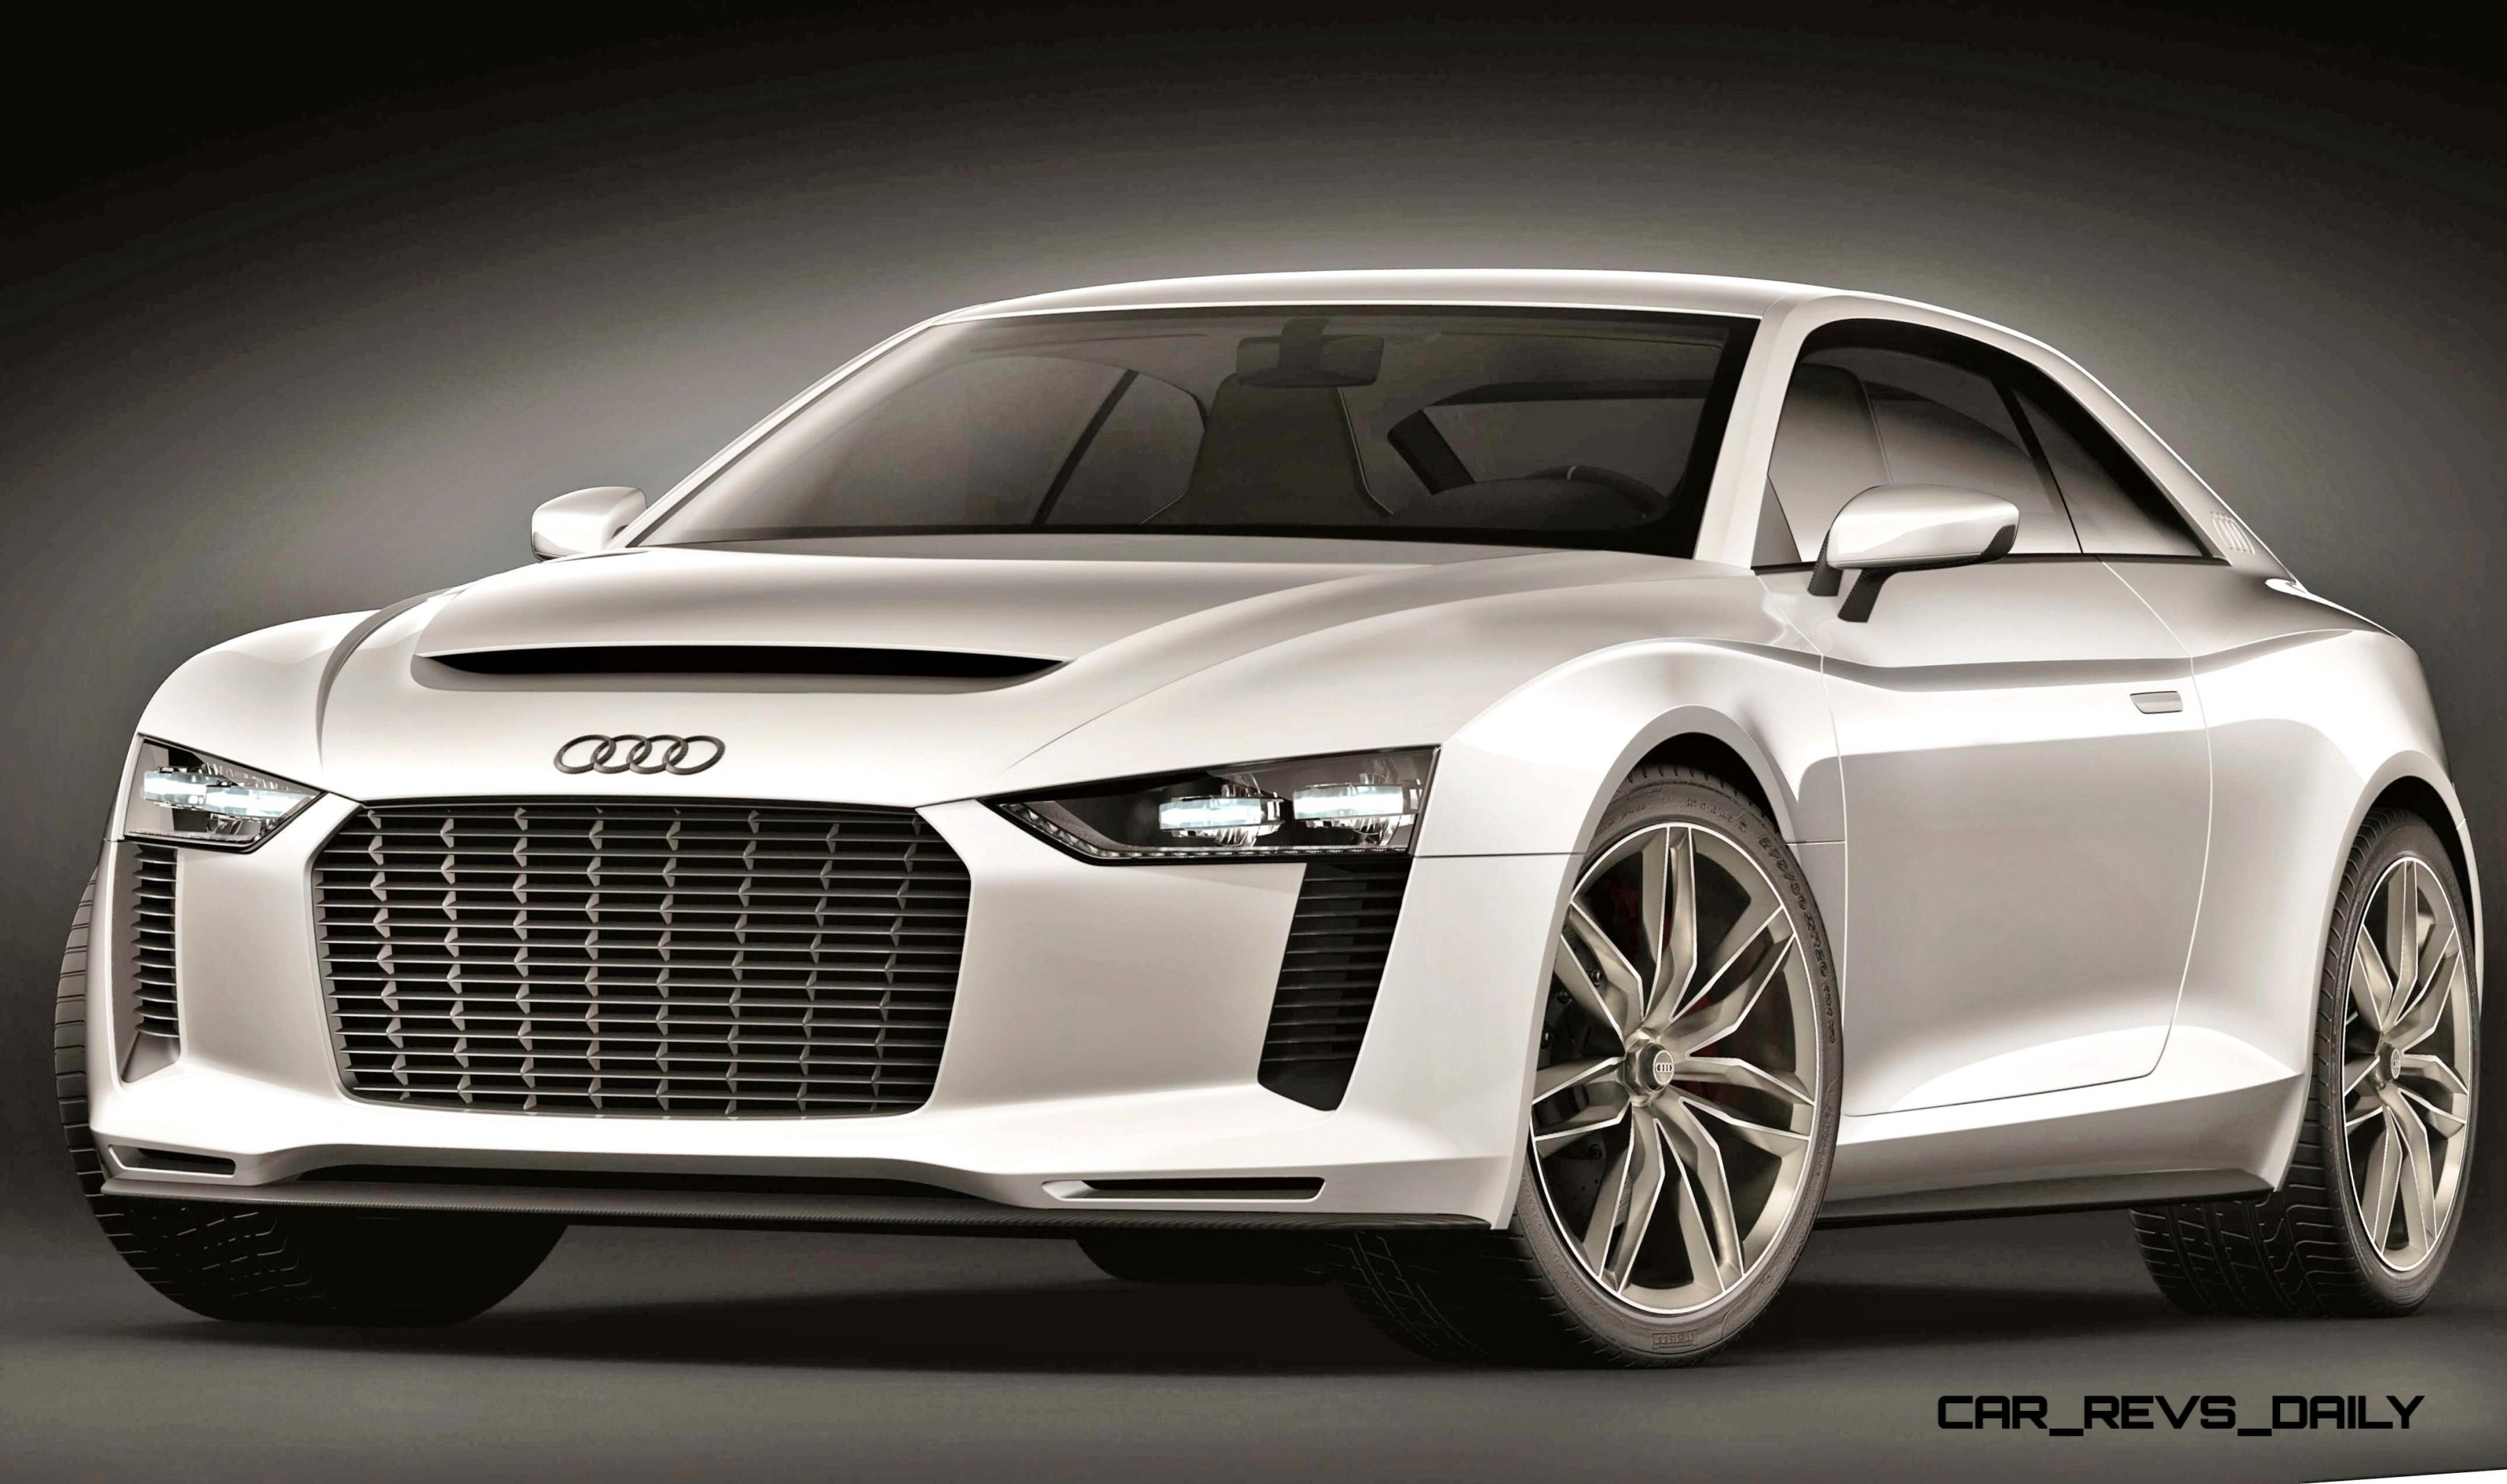 2010 Audi Quattro Concept in 50 High-Res Photos and LED ...